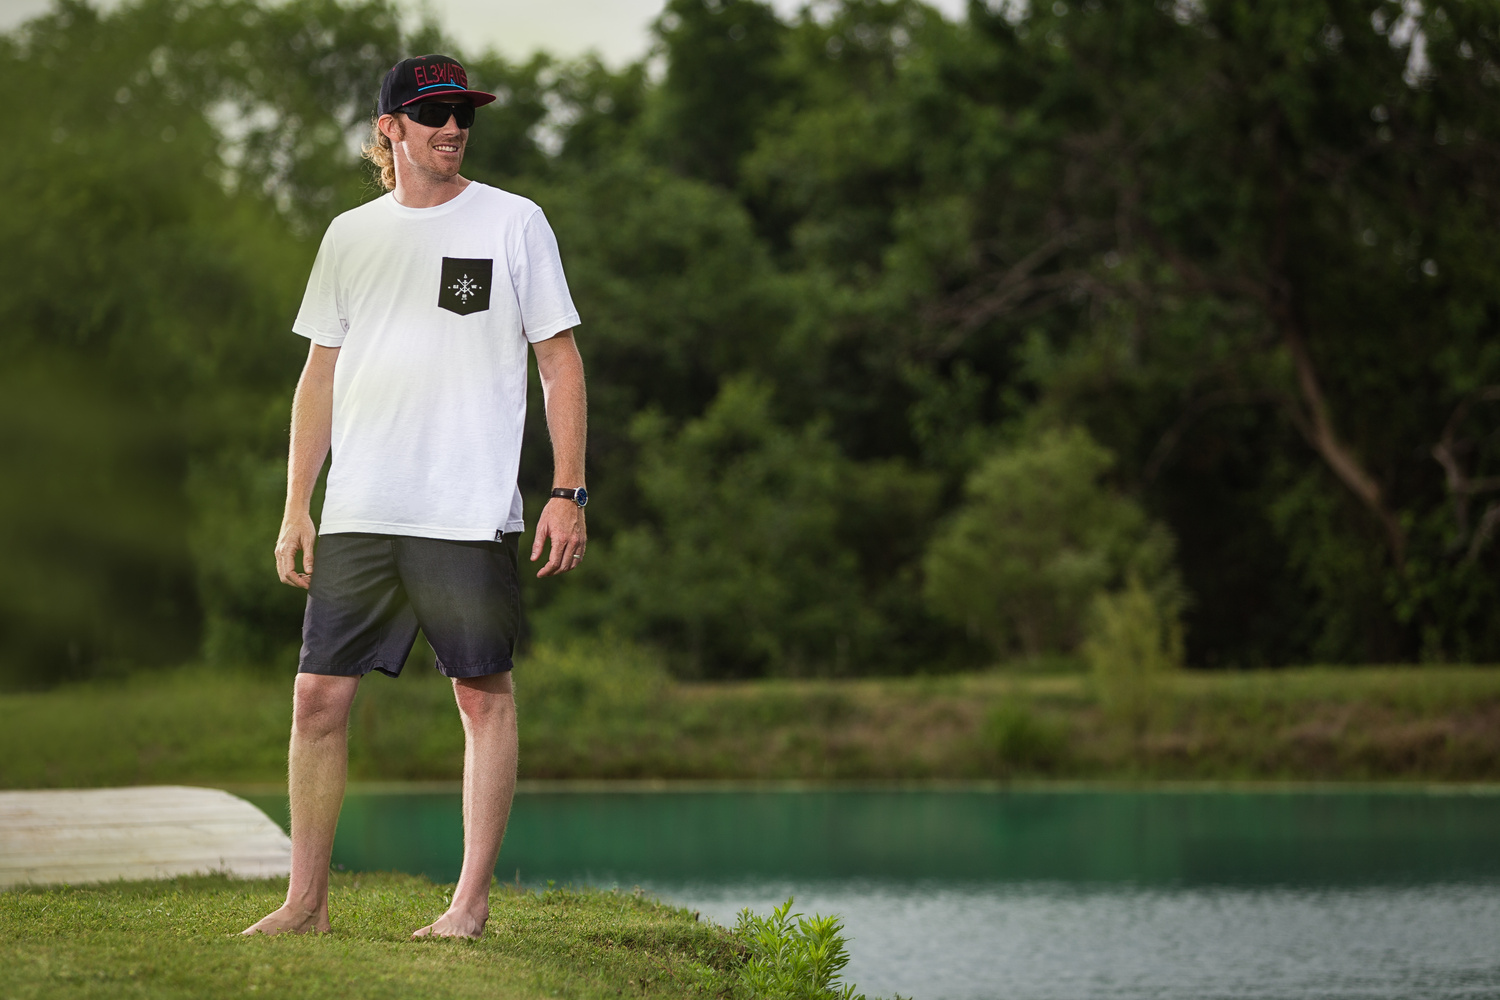 Elevated Clothing Summer by Steven Heger